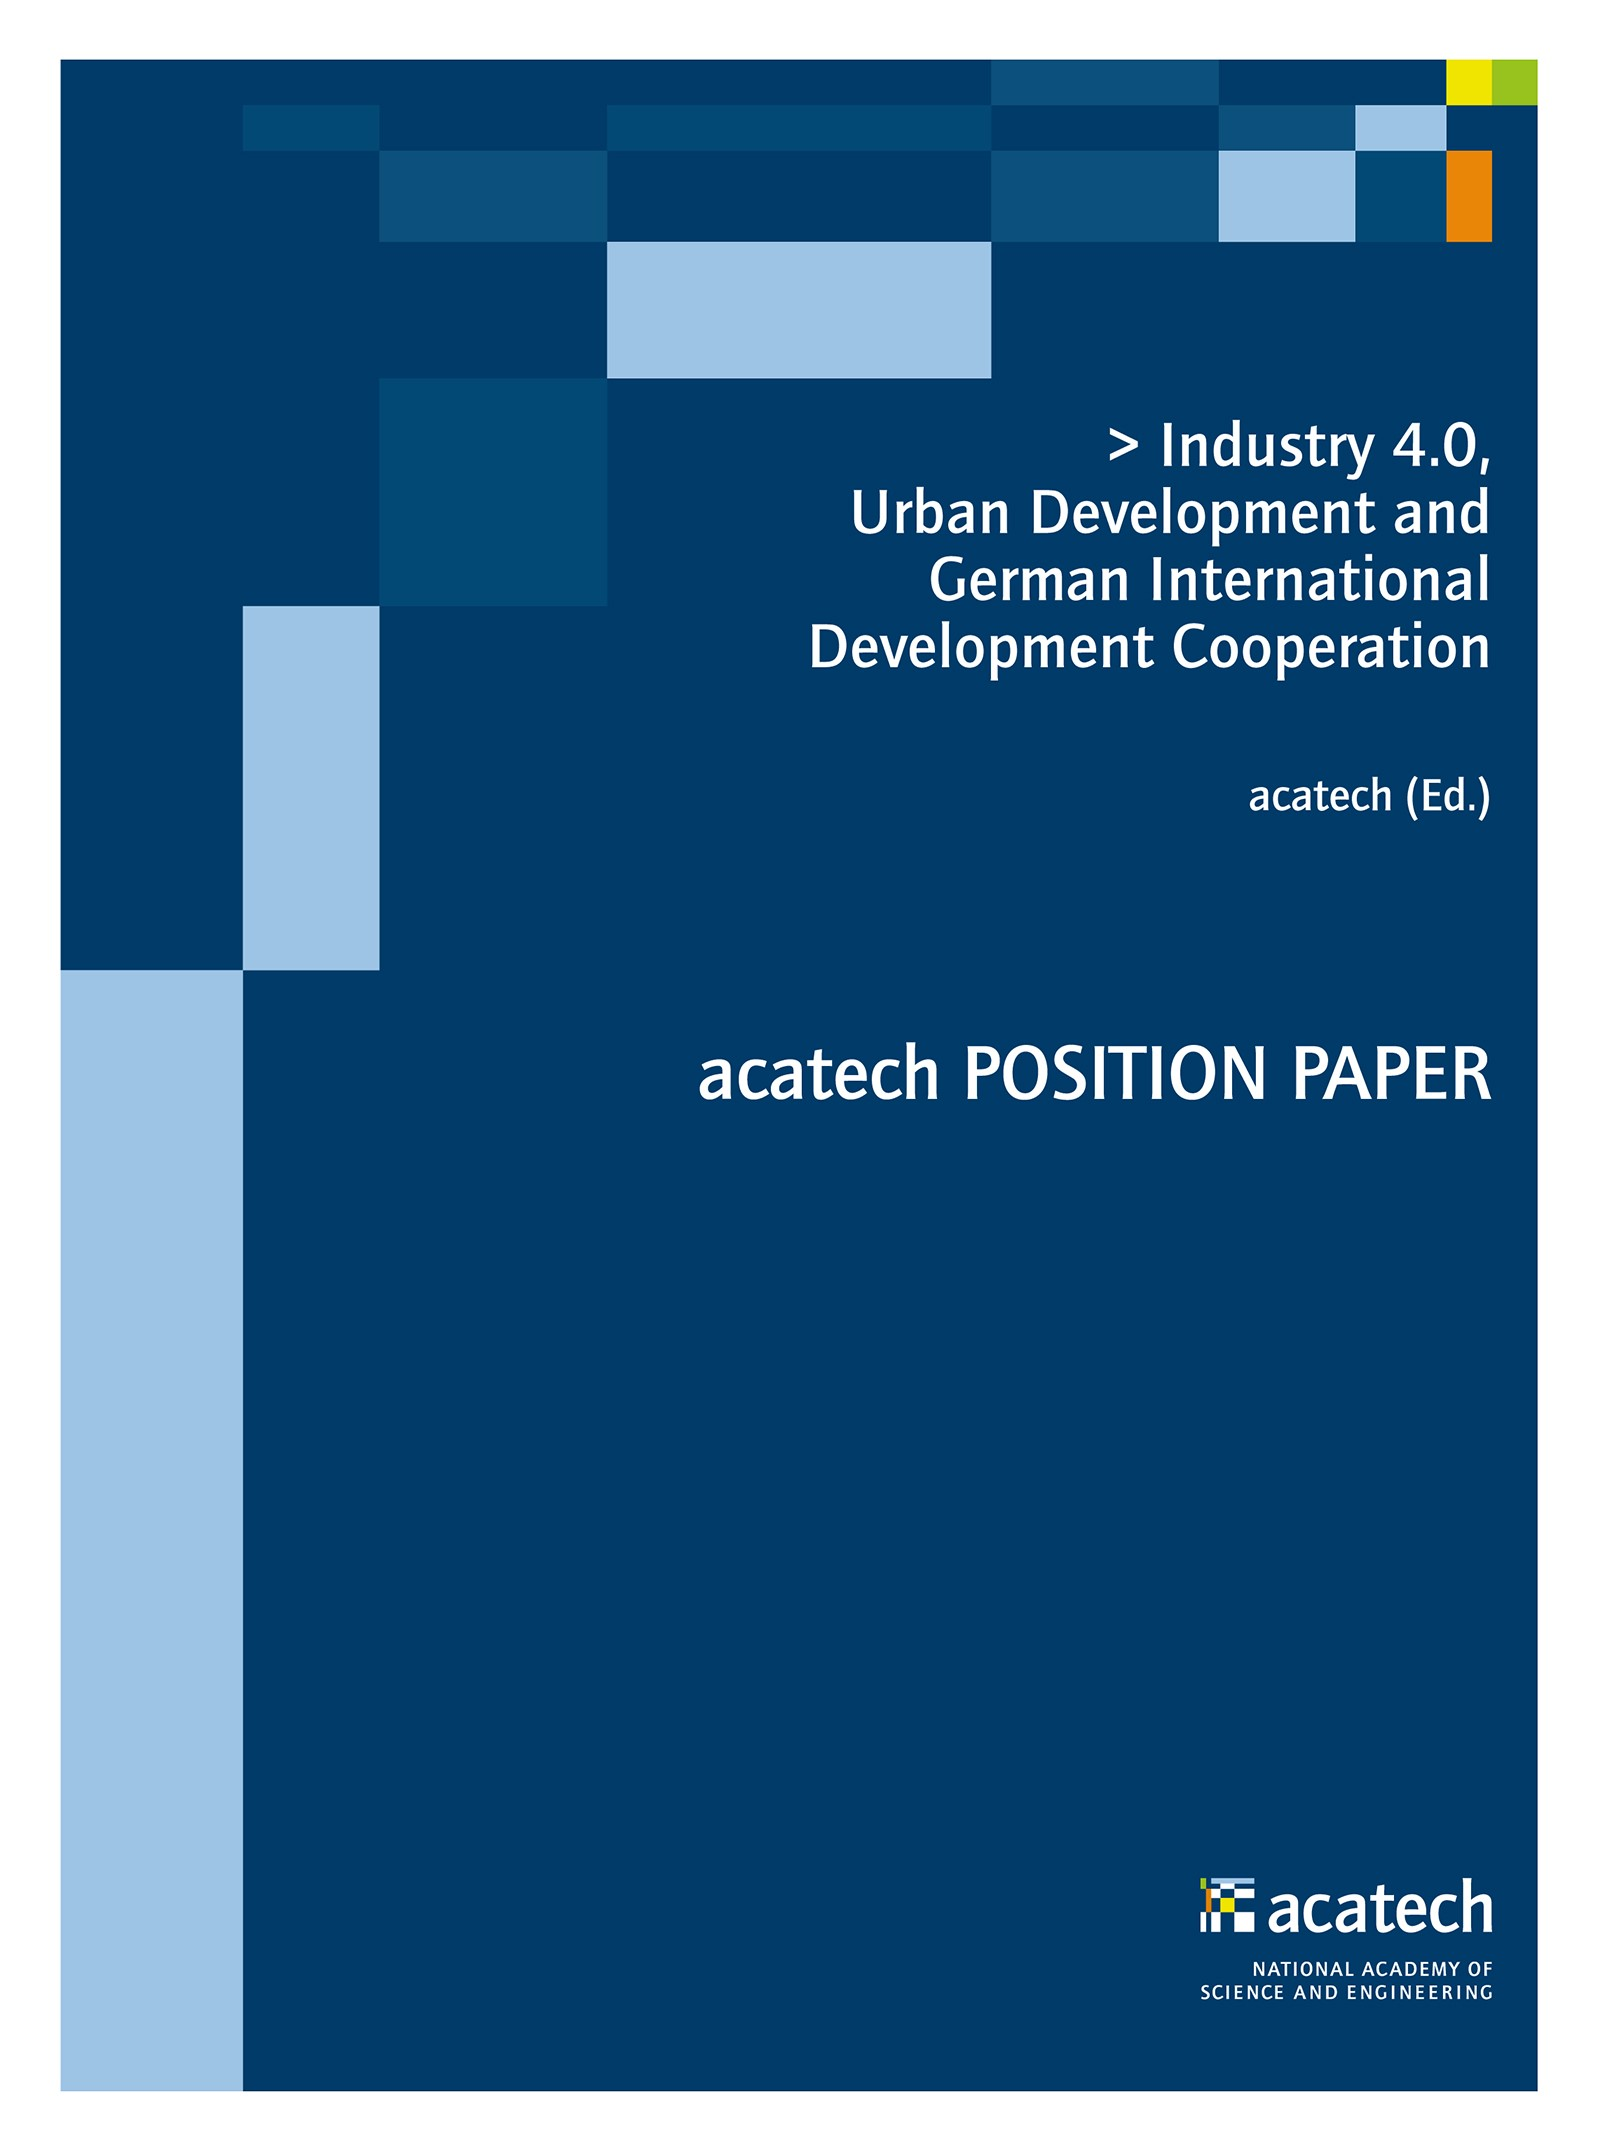 Industry 4.0, Urban Development and German International Development Cooperation | acatech, 2016 | Buch (Cover)